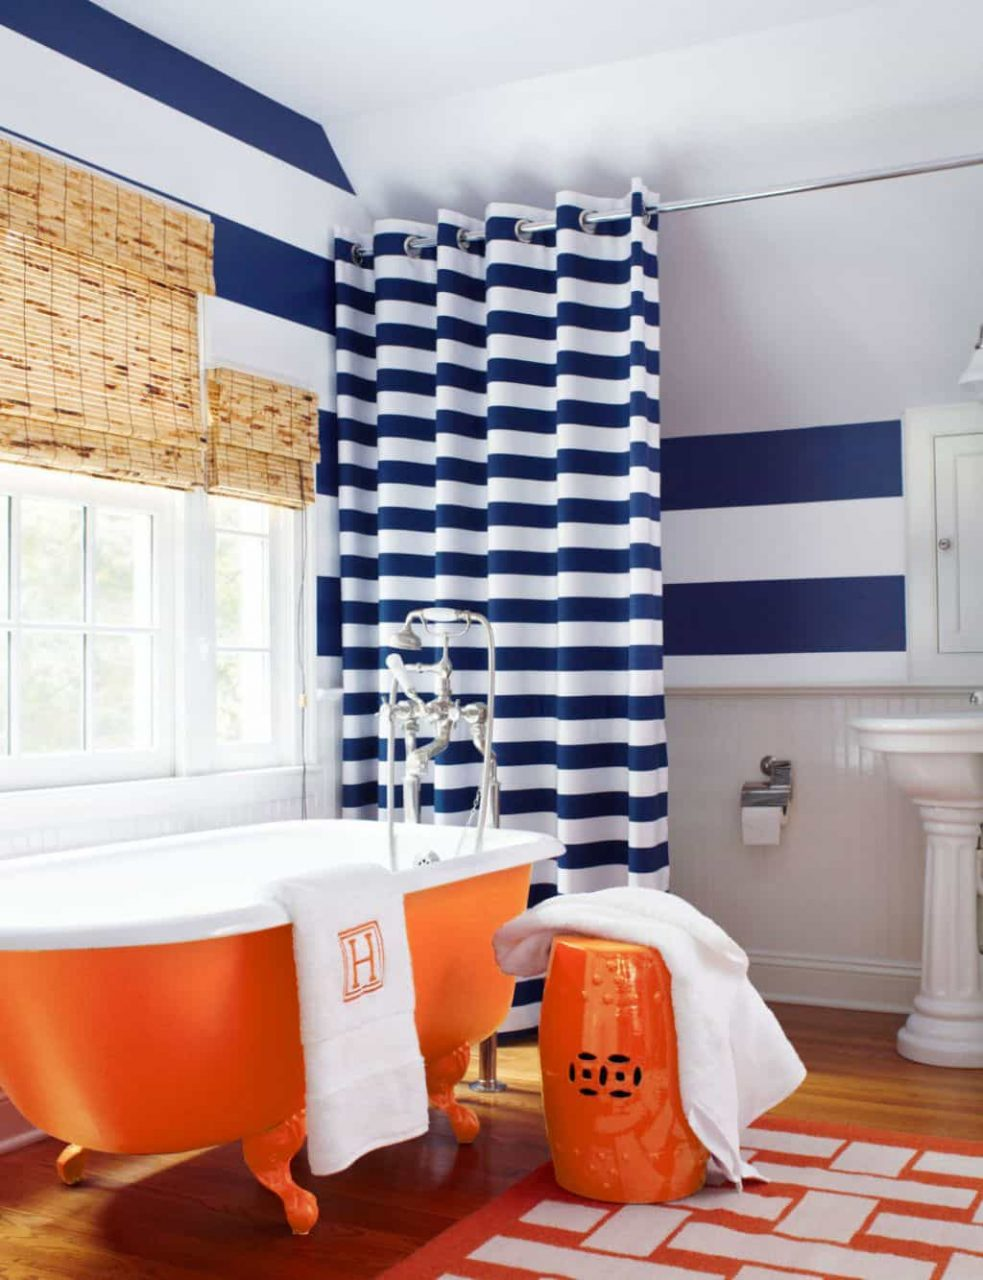 Bathroom With Stripes Walls And Shower Curtain Also Using Orange